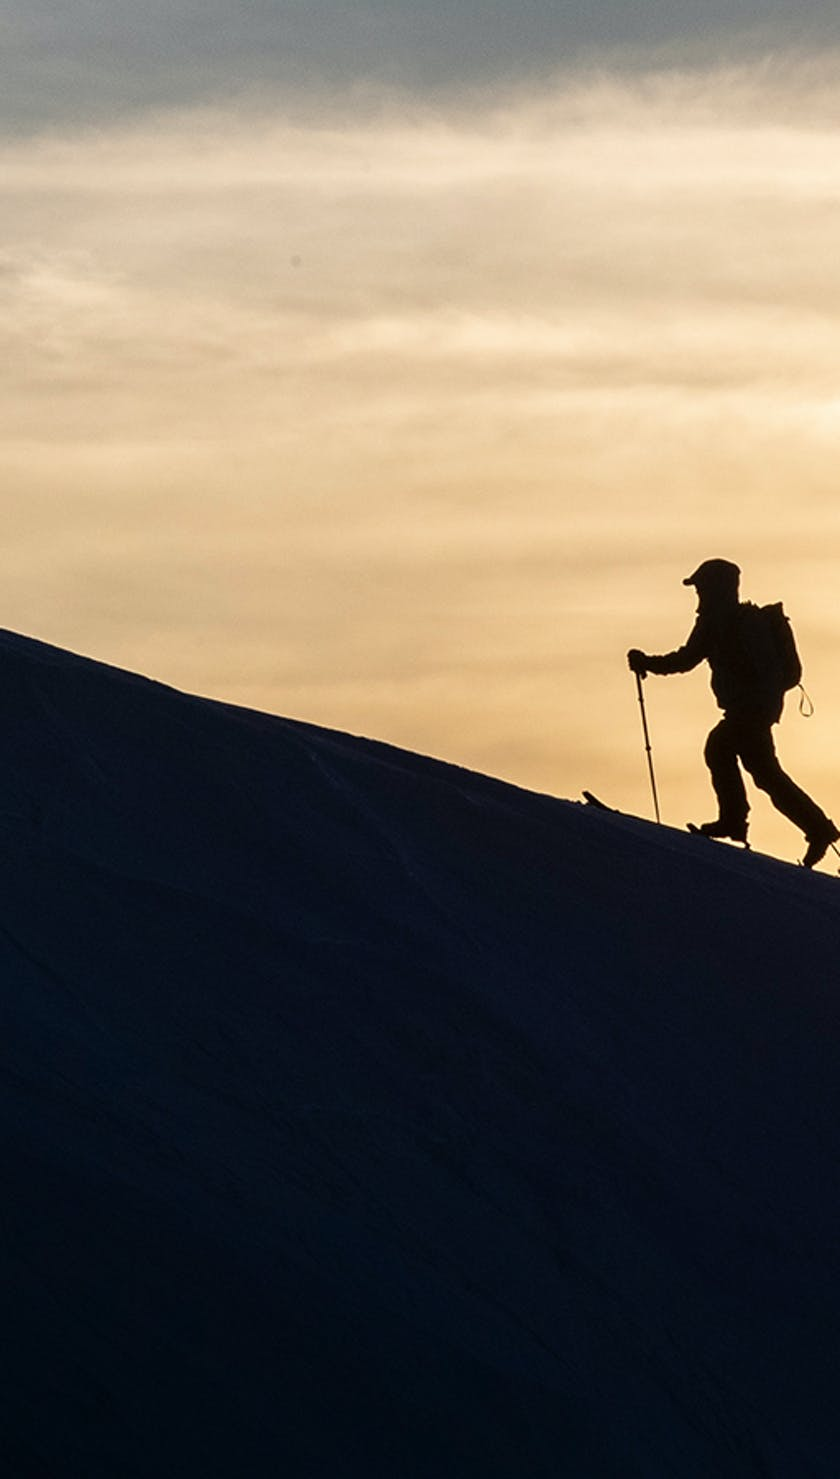 skinning at sunrise